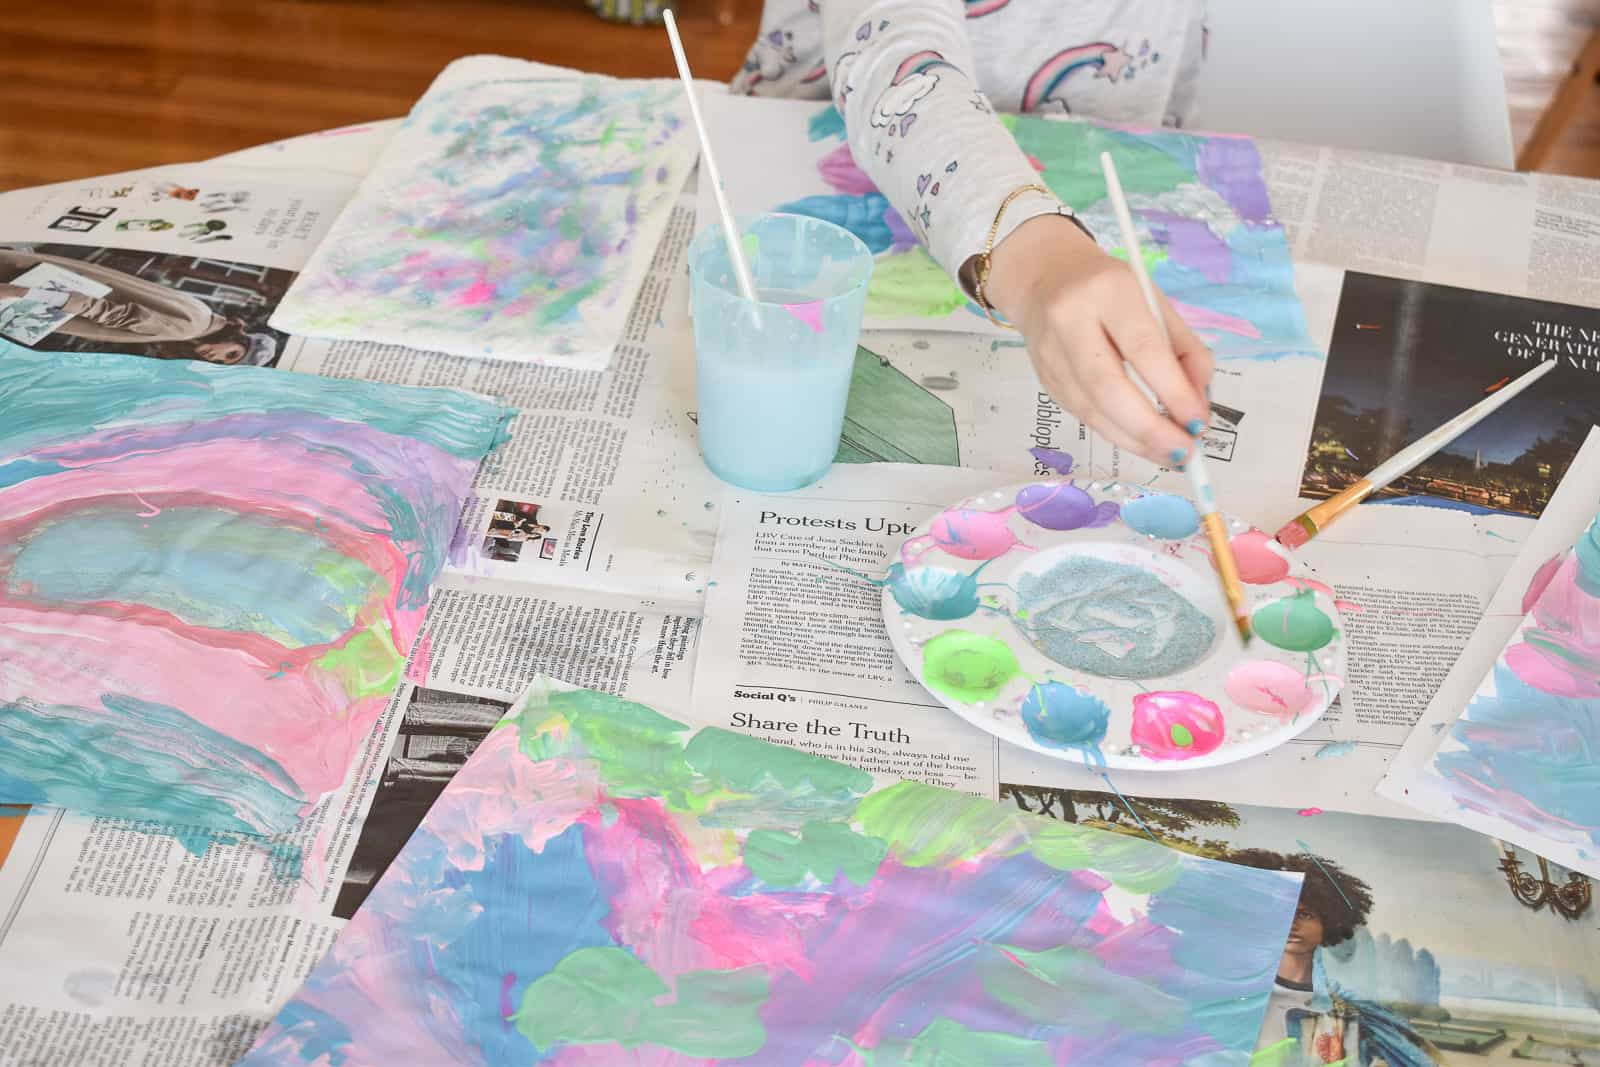 Kids painting with craft paint on paper